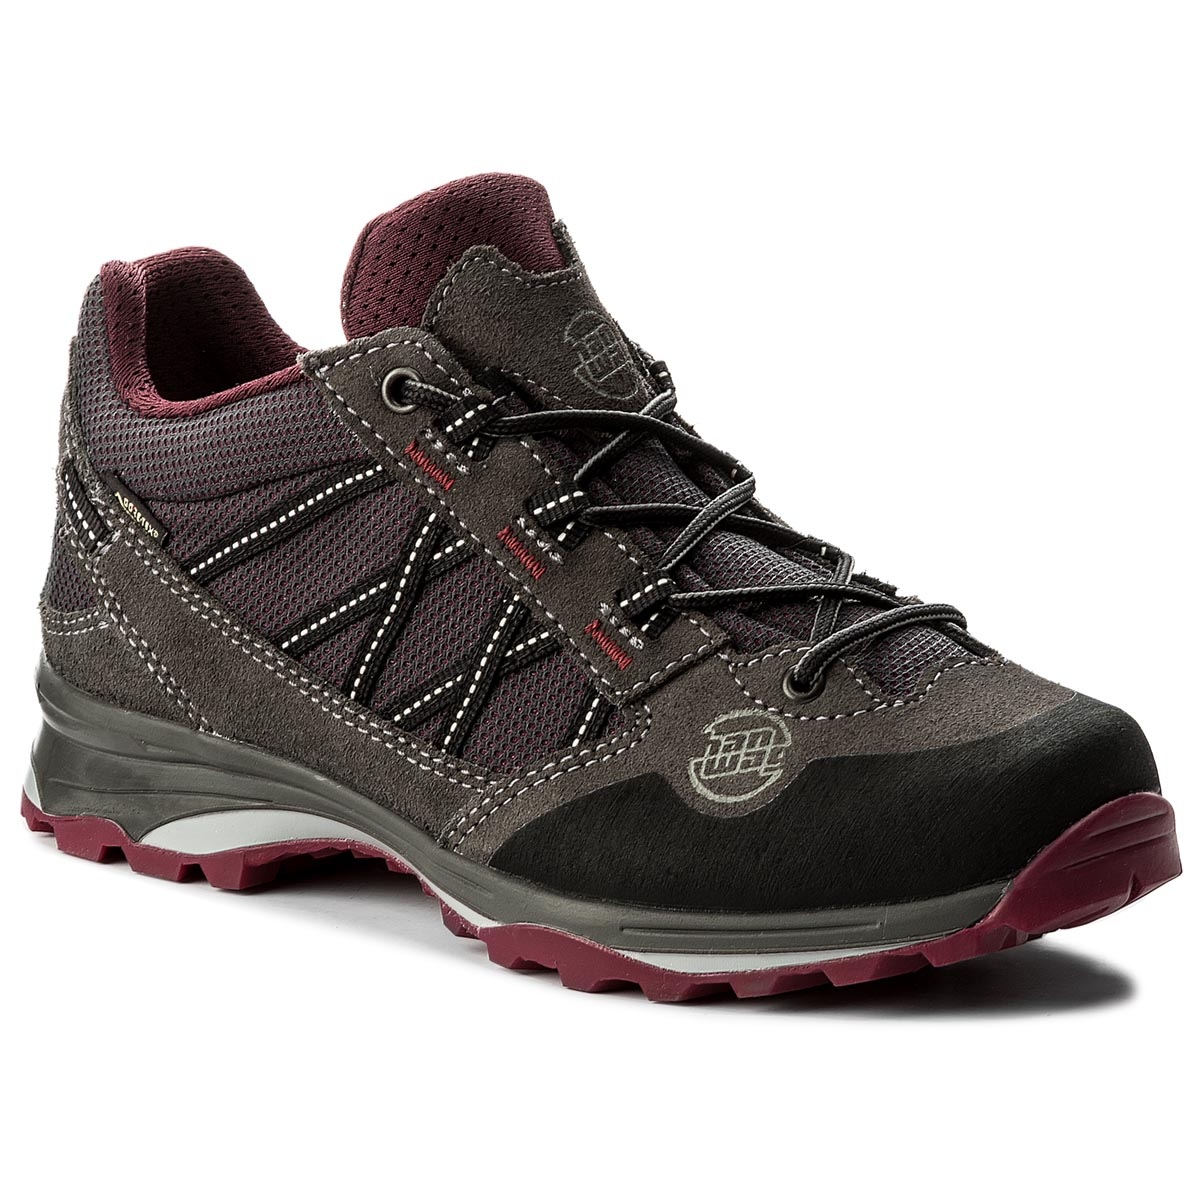 Buty HANWAG - Belorado II Low Lady Gtx GORE-TEX 201201-064356 Asphalt/Dark Garnet